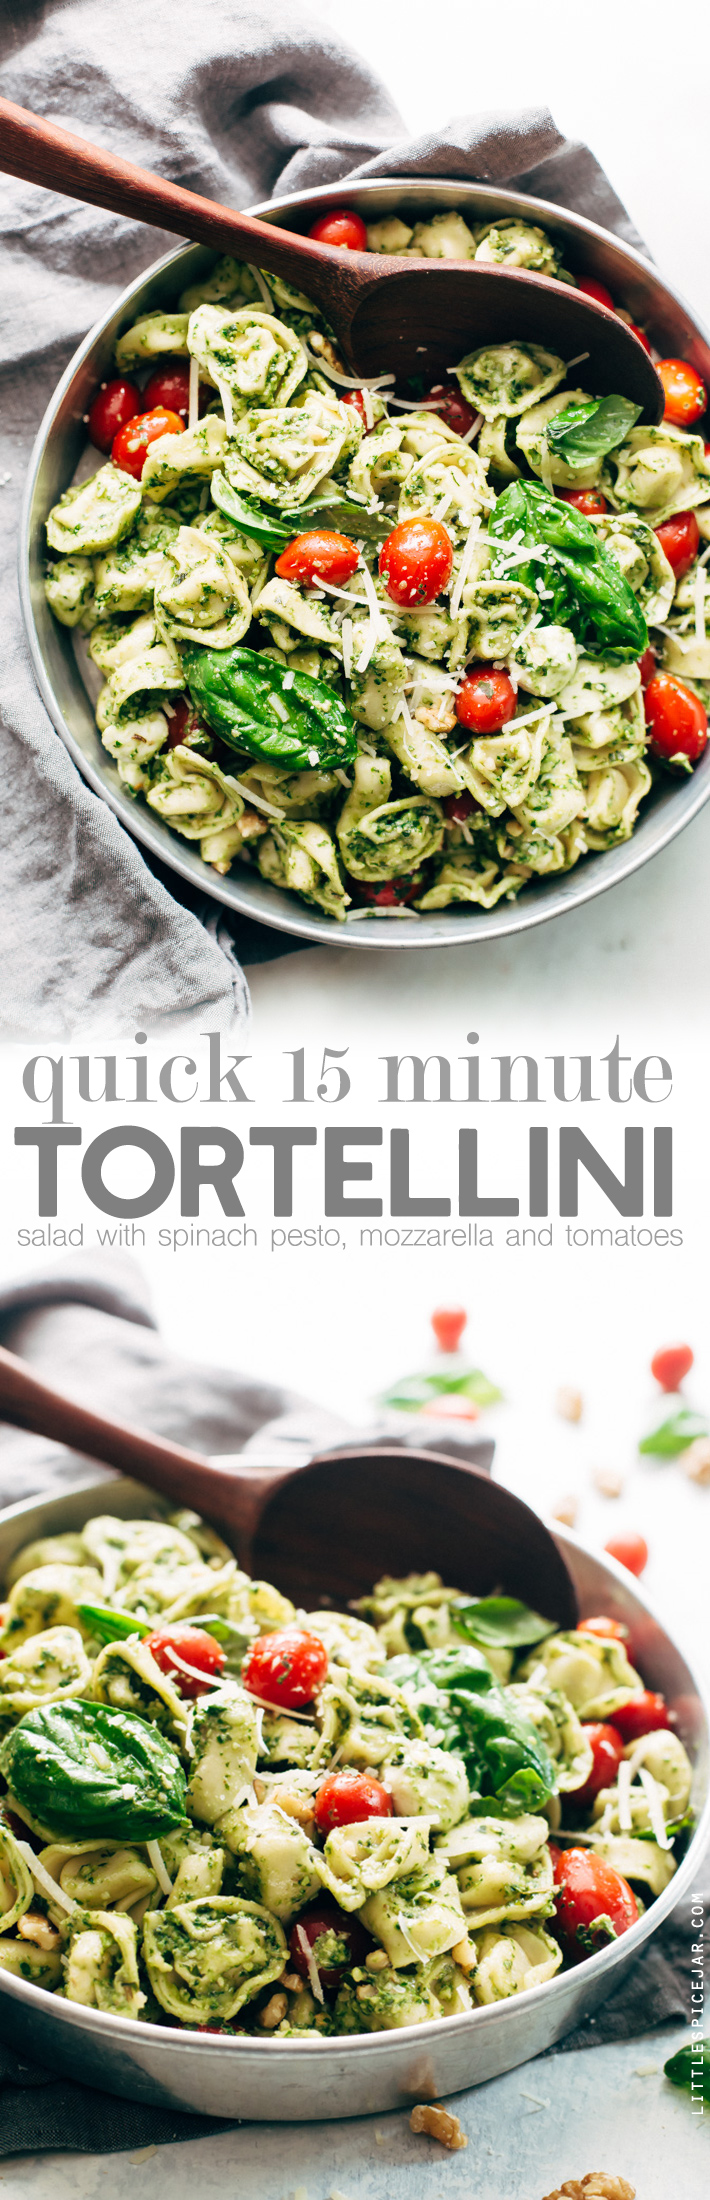 15 Minute Spinach Pesto Tortellini Salad - a quick and easy pasta salad that's perfect for picnics, potlucks, and barbecues! Ready in just 15 minutes! #tortellinisalad #pasta #pastasalad #spinachpesto | Littlespicejar.com